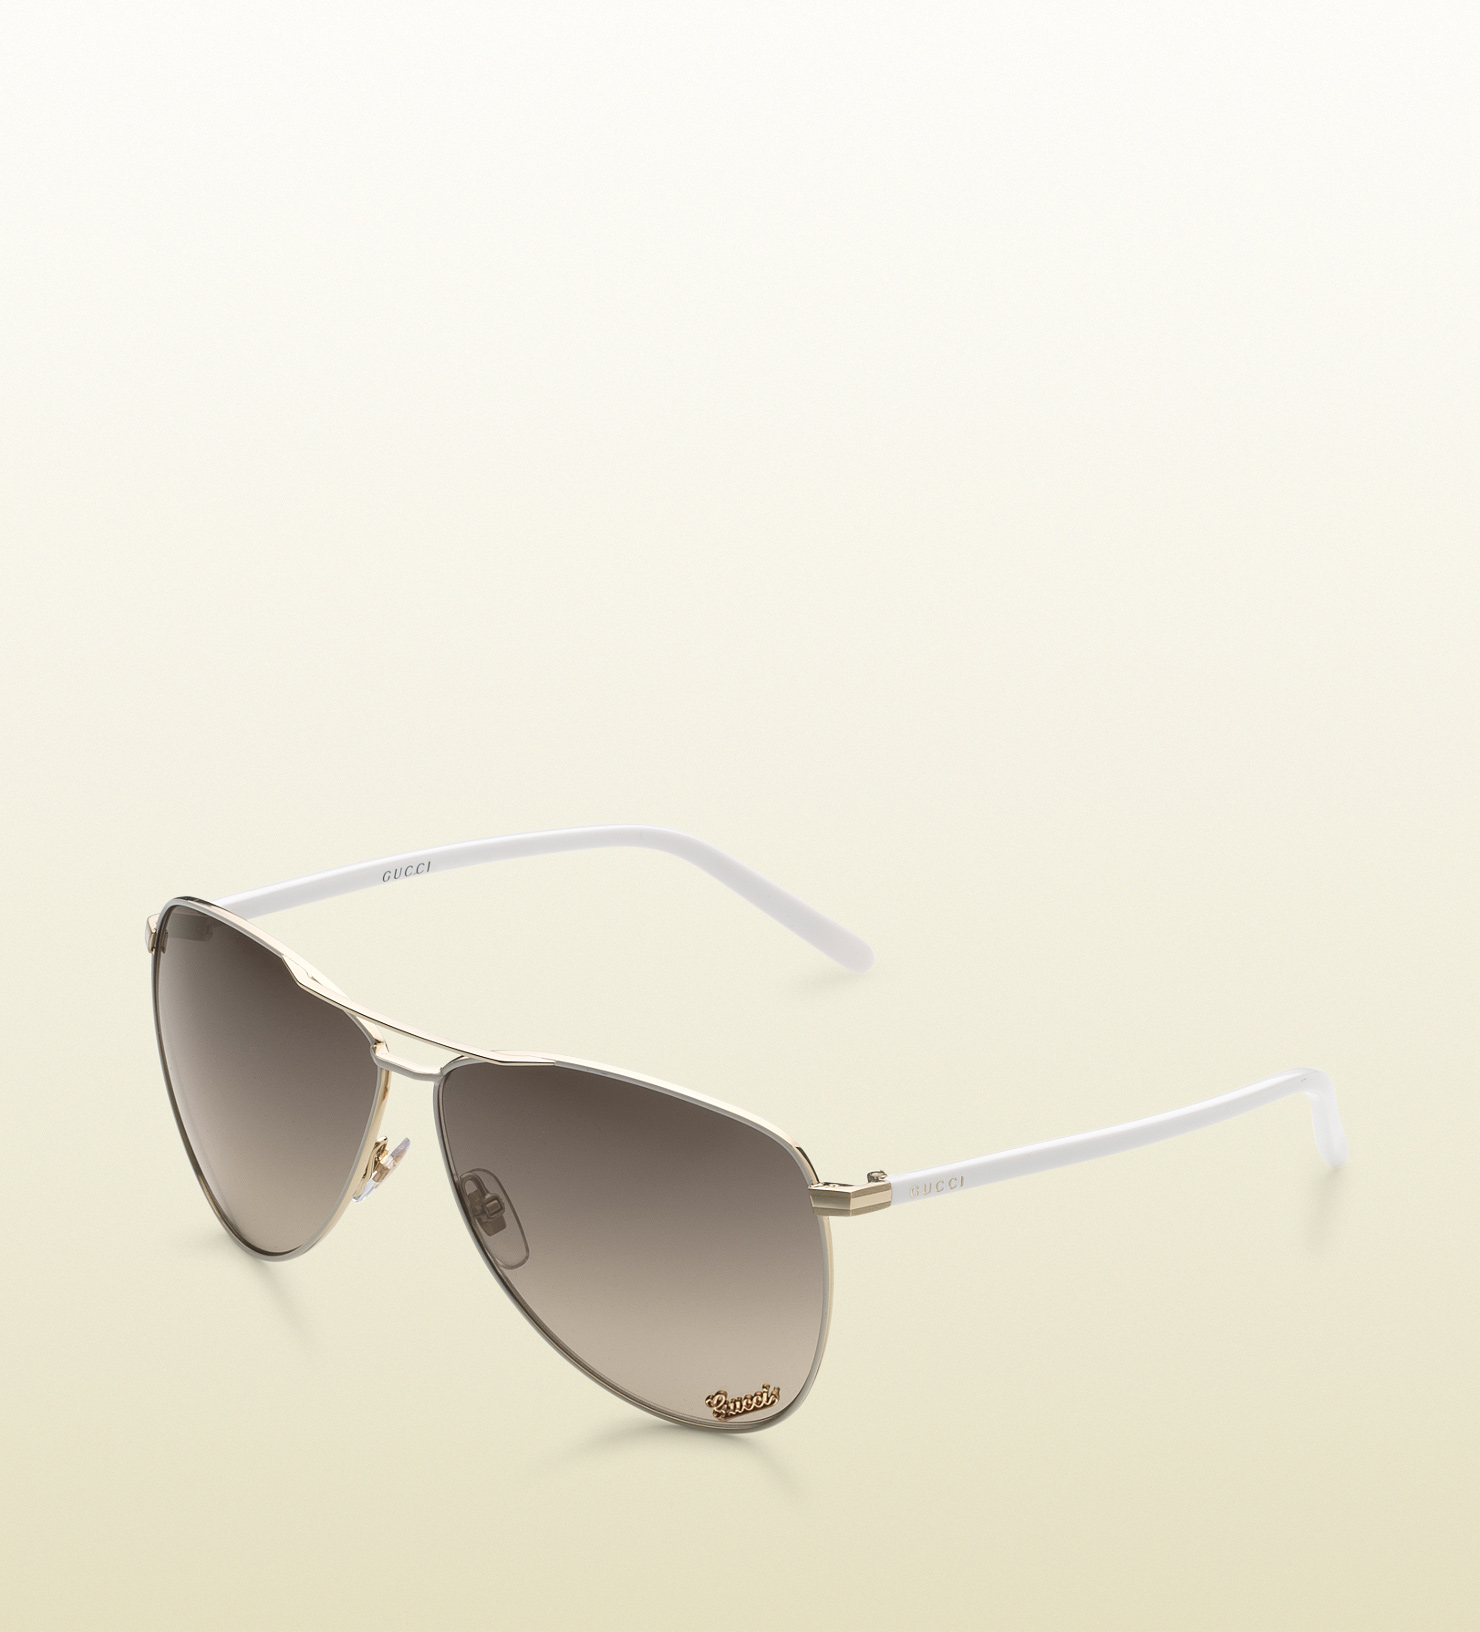 ef14782192 Gucci Aviator Sunglasses with Gucci Signature Pad On Lens and Gucci ...